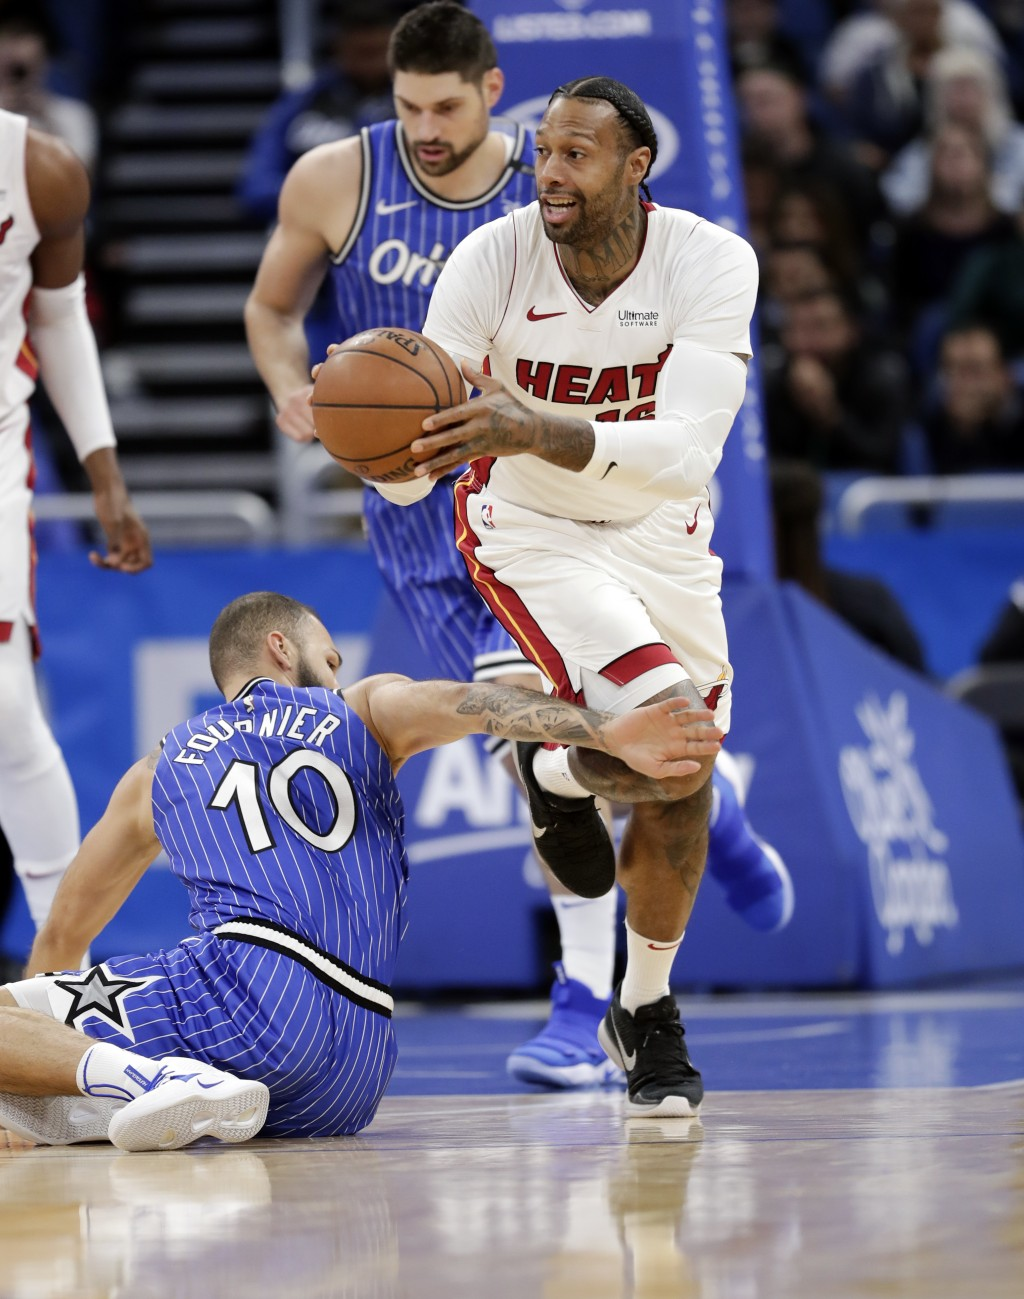 Miami Heat's James Johnson, right, moves past Orlando Magic's Evan Fournier (10) after scooping up a loose ball during the first half of an NBA basket...